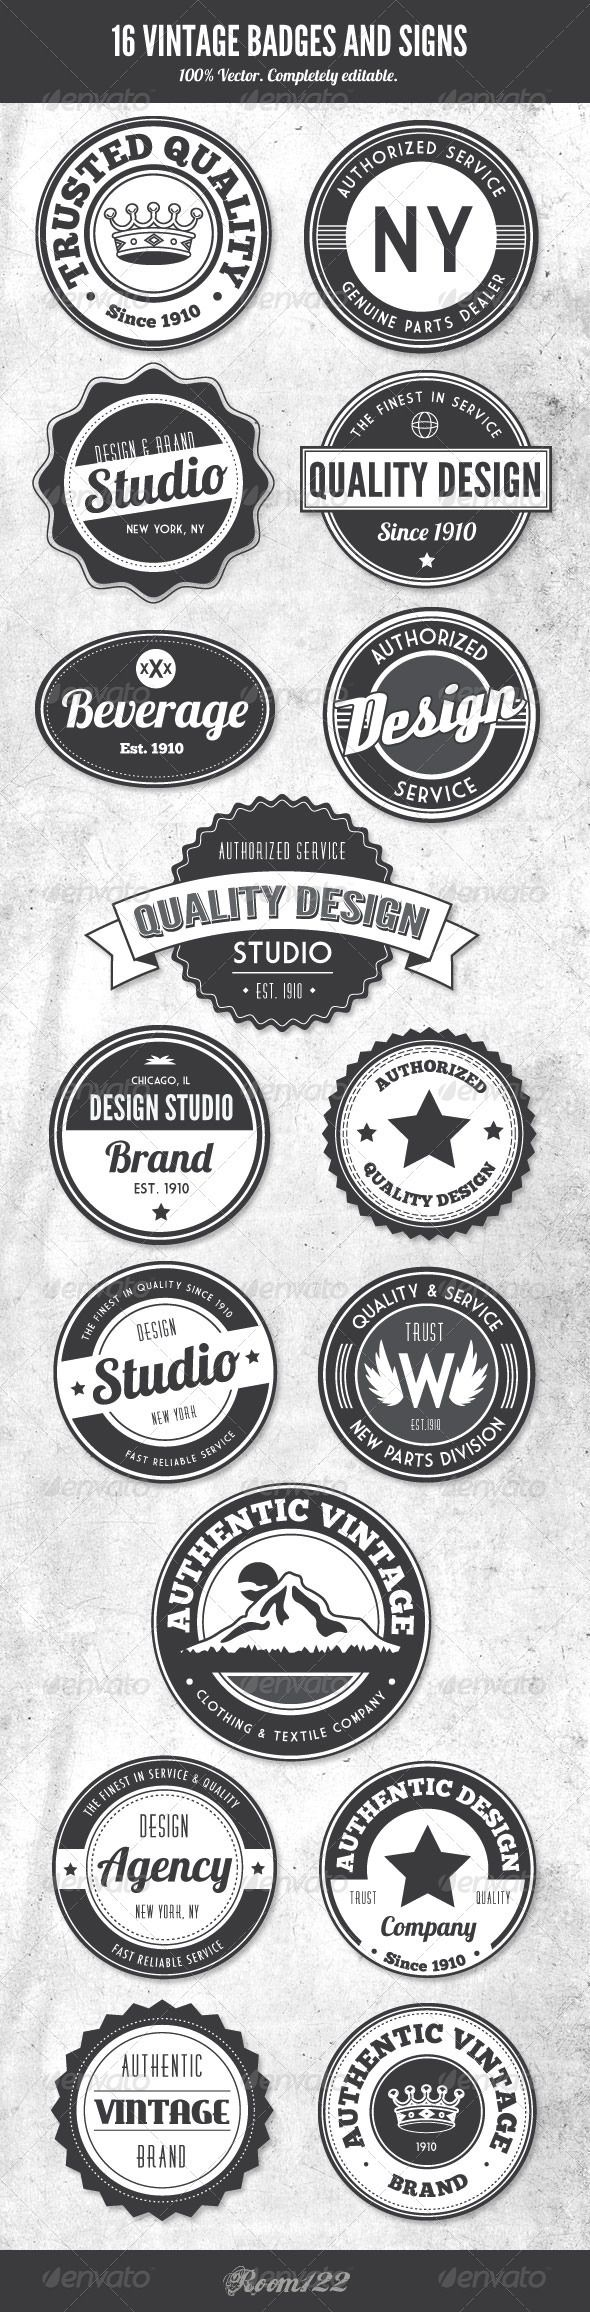 Vintage Style Badges and Logos - Badges & Stickers Web Elements